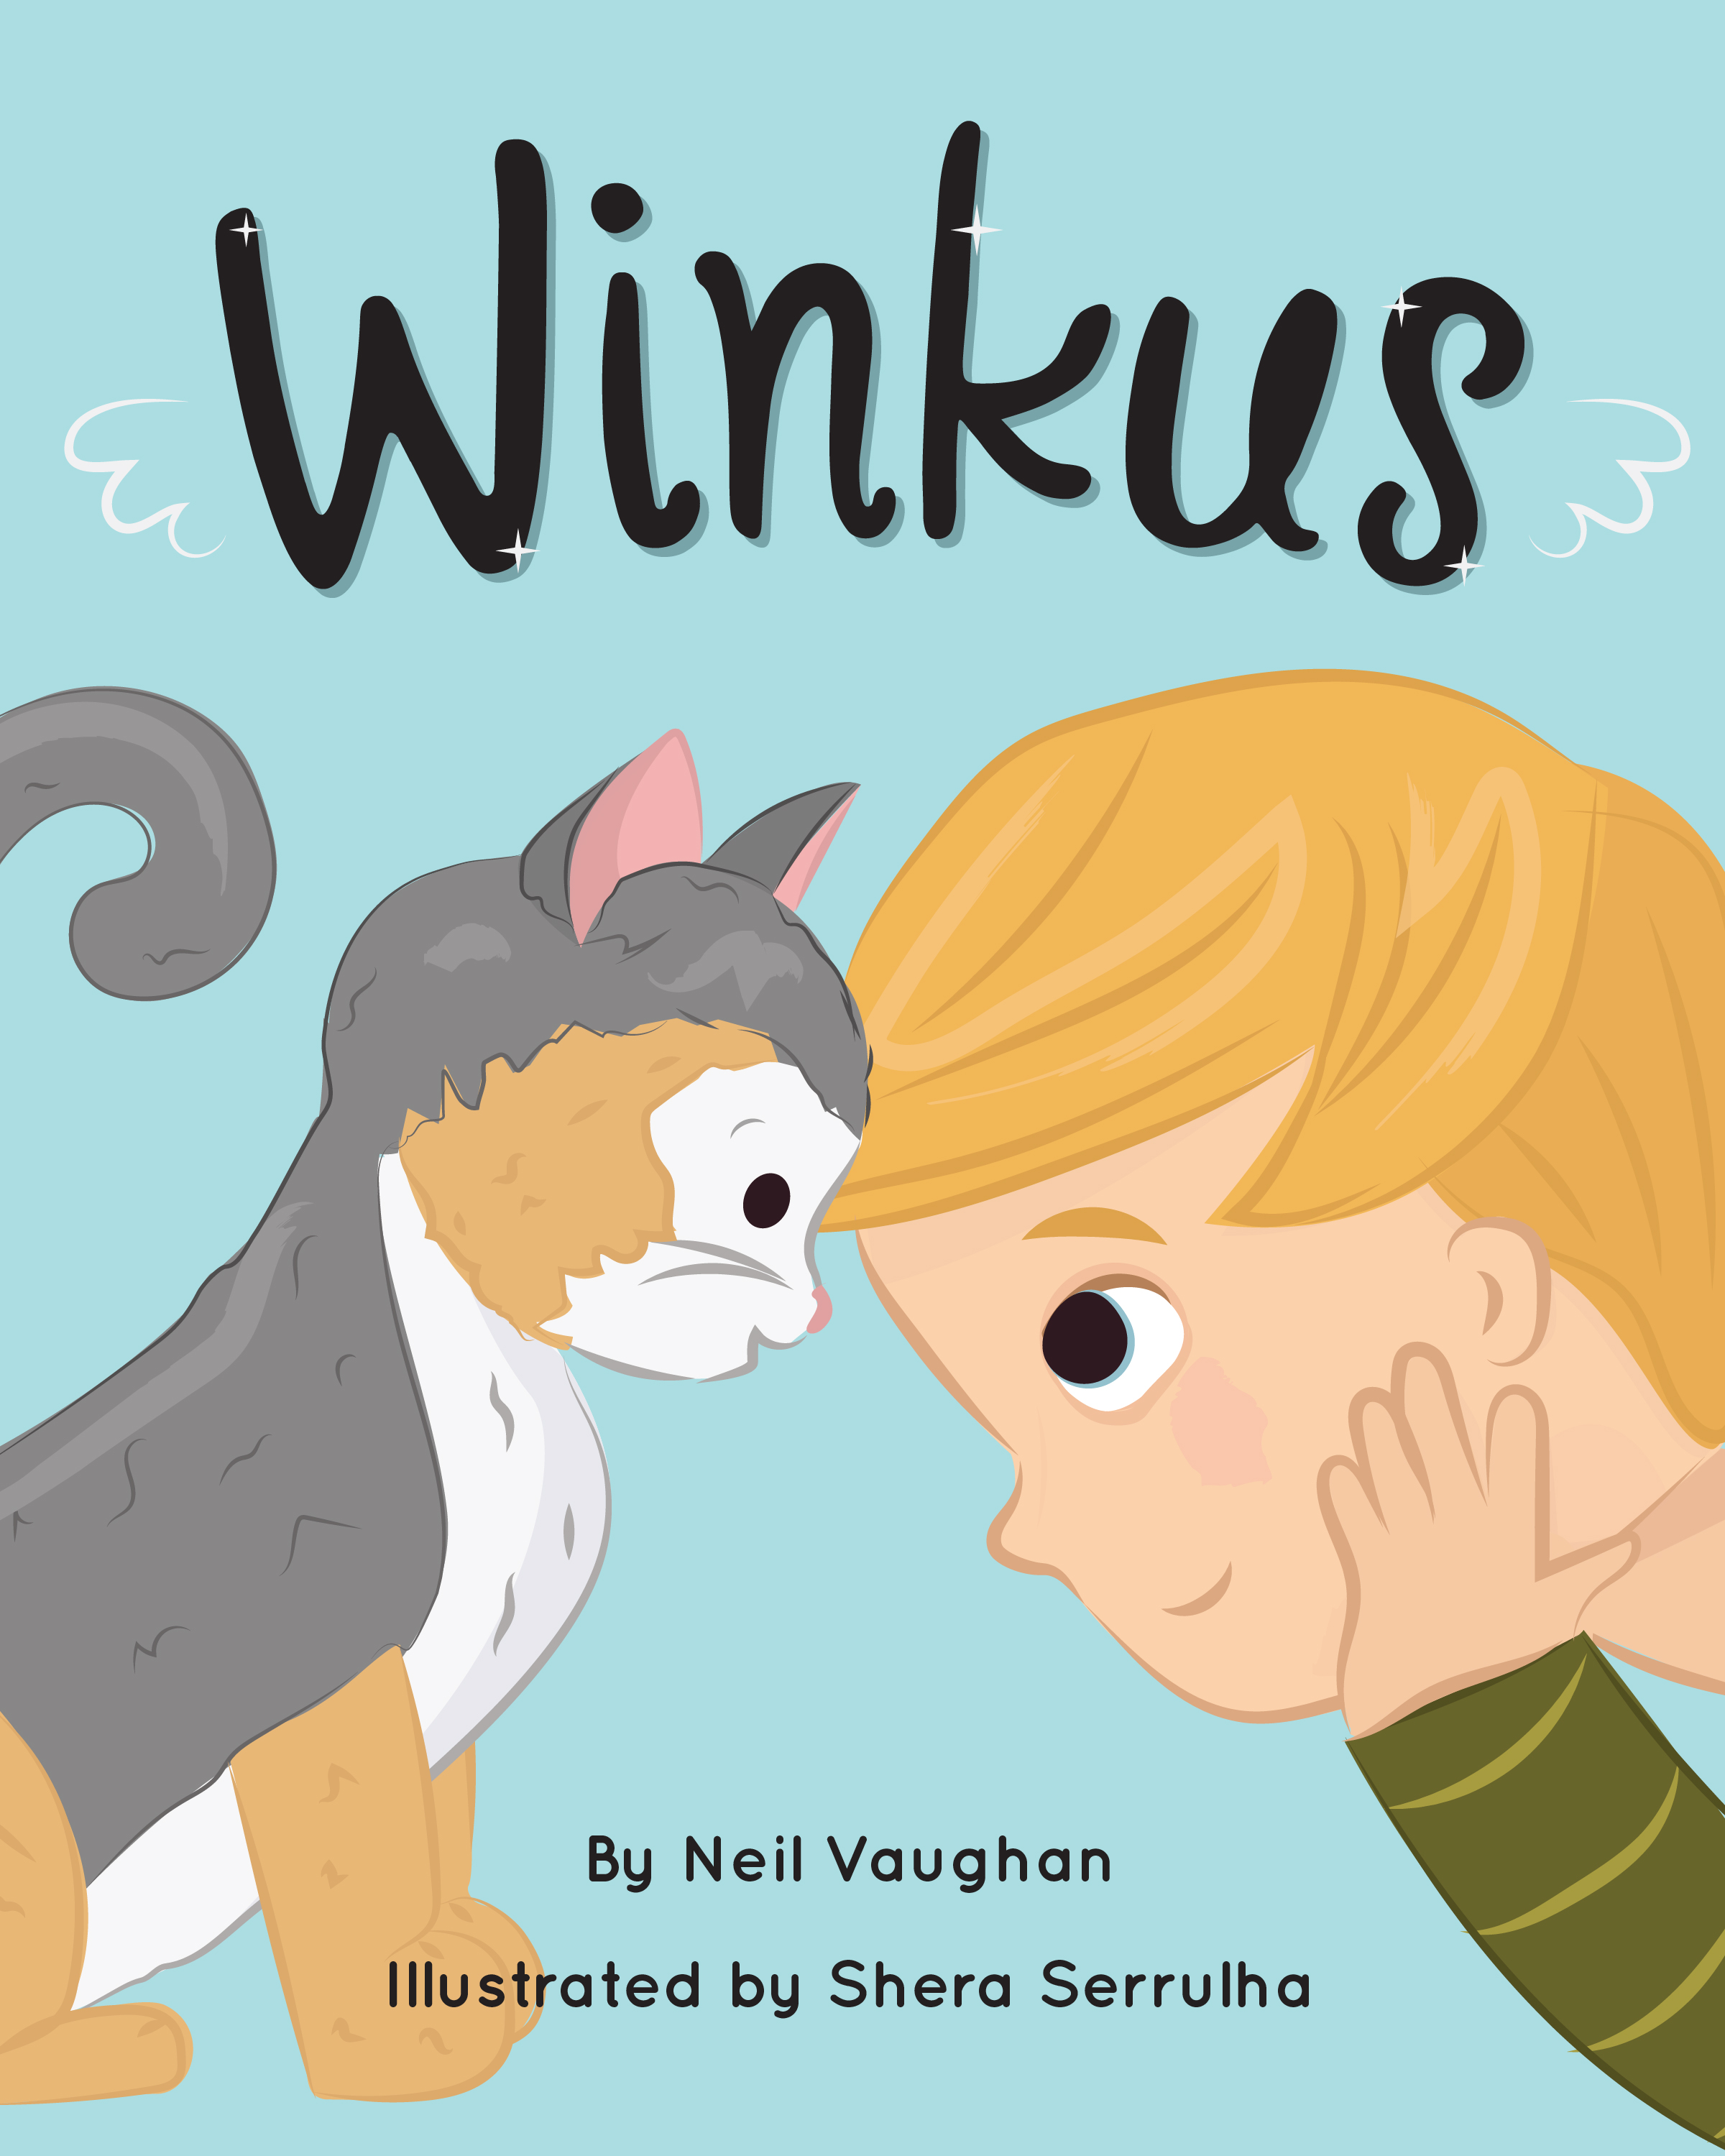 Winkus: Children's Book Design & Illustrations - A story about a boy and his cat whose love was boundless. When Sam's mother gifts her son a young kitten, they bond instantly and form a special connection. Sadly, the kitten passes away, and Sam works through the difficult emotions of losing a pet. Youngsters who have also lost beloved pets can see themselves and their feelings mirrored in Sam and Winkus, and will find comfort in the story.